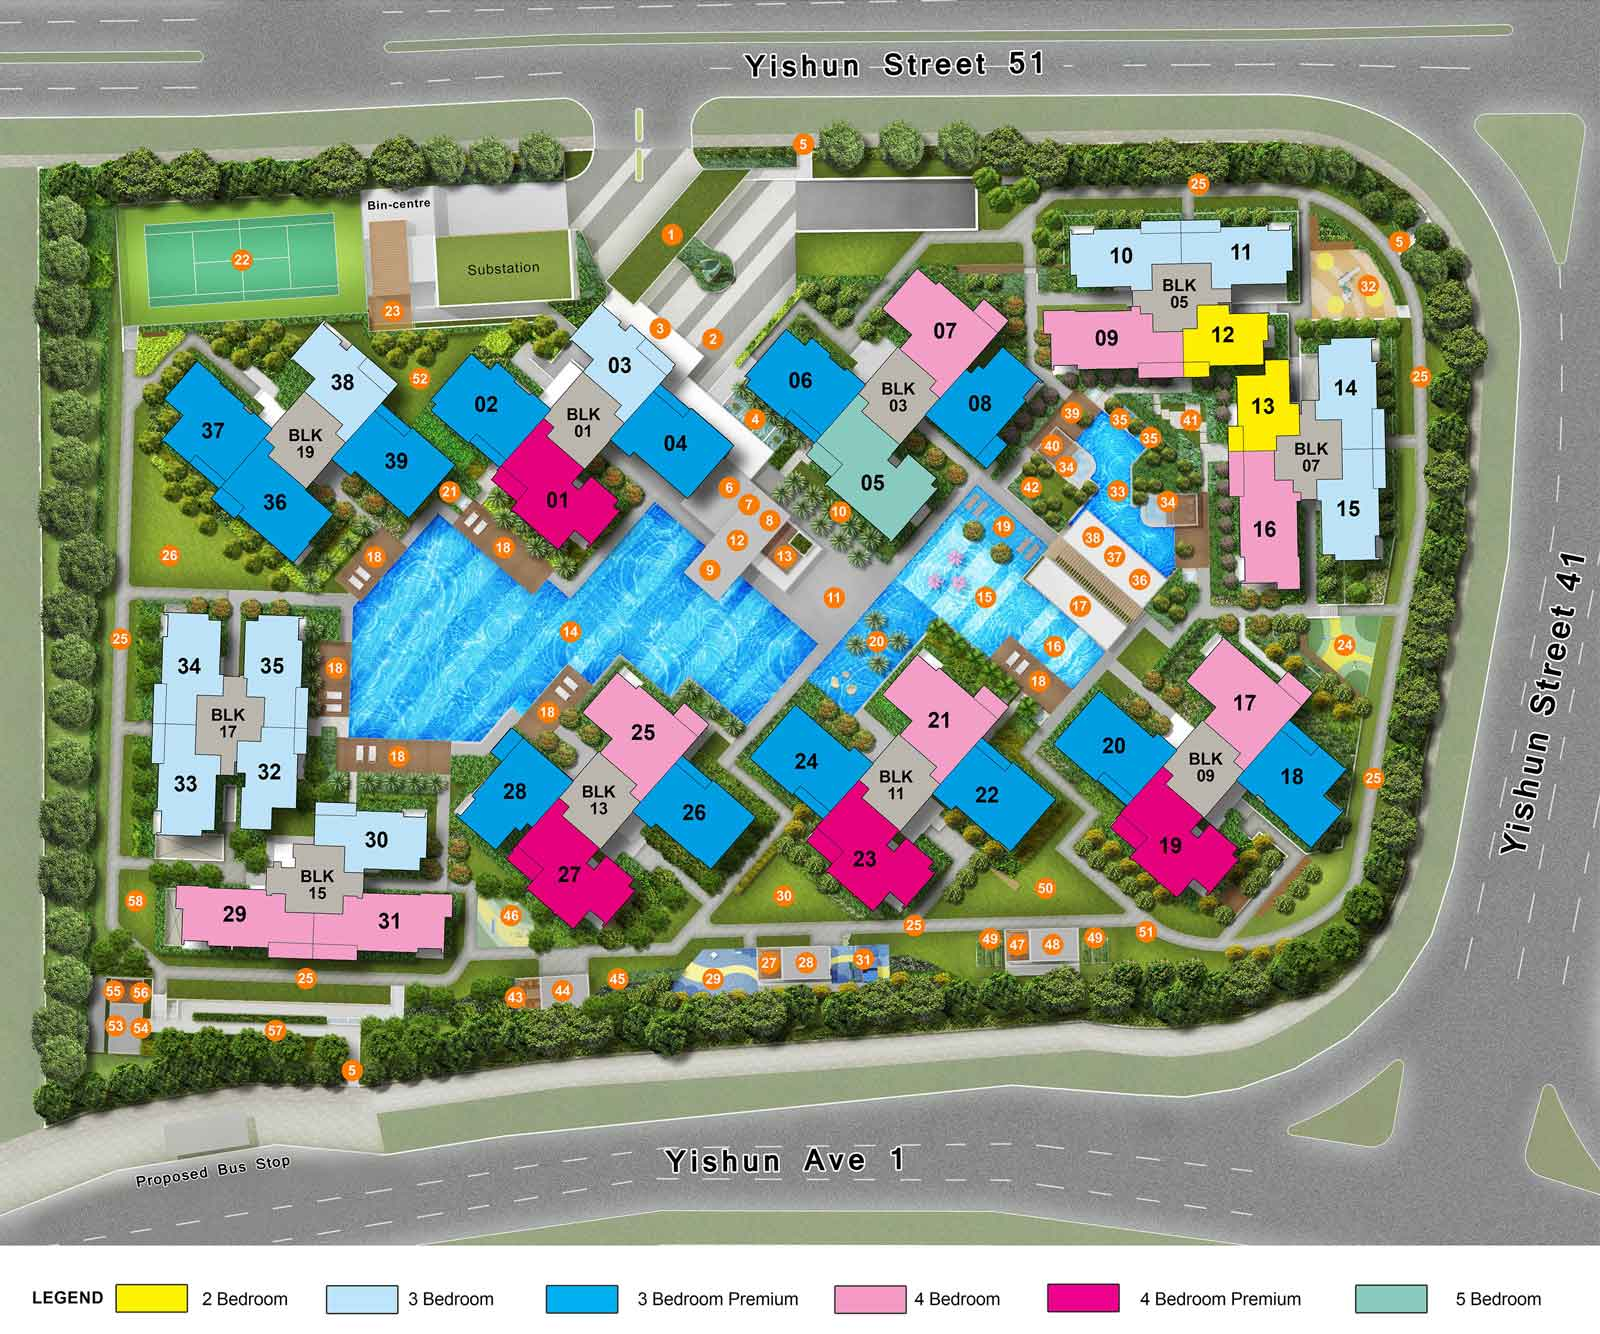 Site Plan of The Criterion EC at Yishun